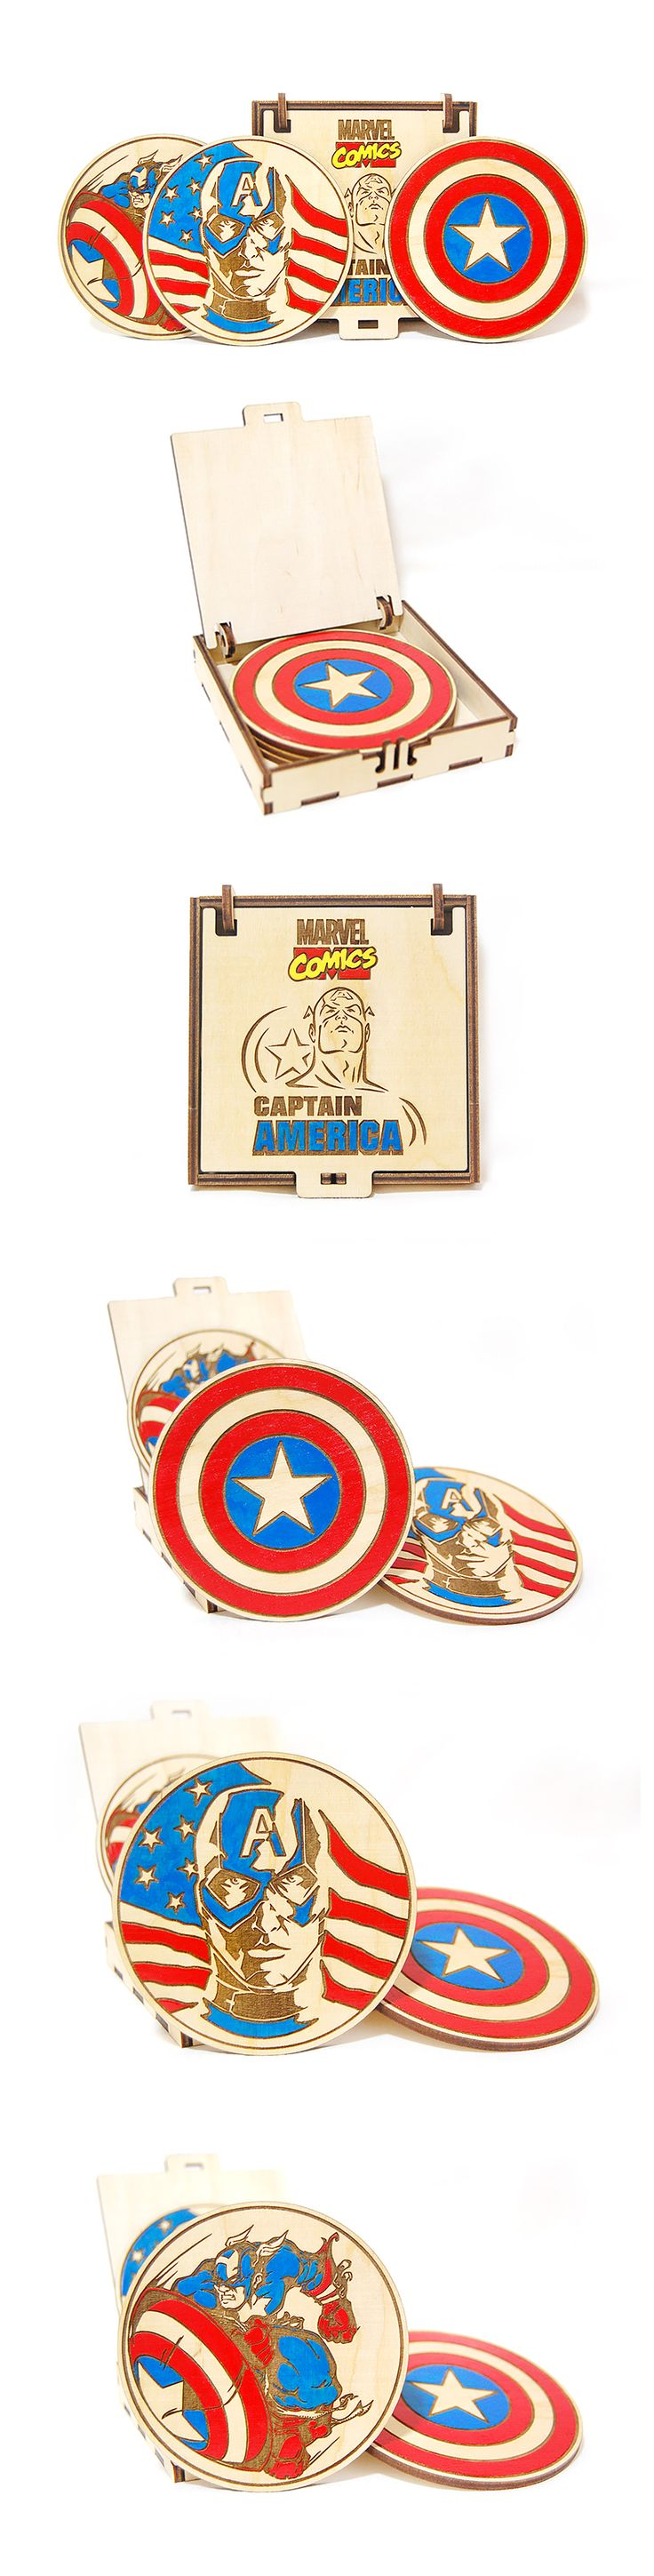 Captain America Marvel wooden colored coasters set Avengers Laser engraved Superhero Gift for him Birthday gift Gift for Independence Day. #Marvel #CaptainAmerica #WoodenCoasters #Superheroes #LaserEngraved